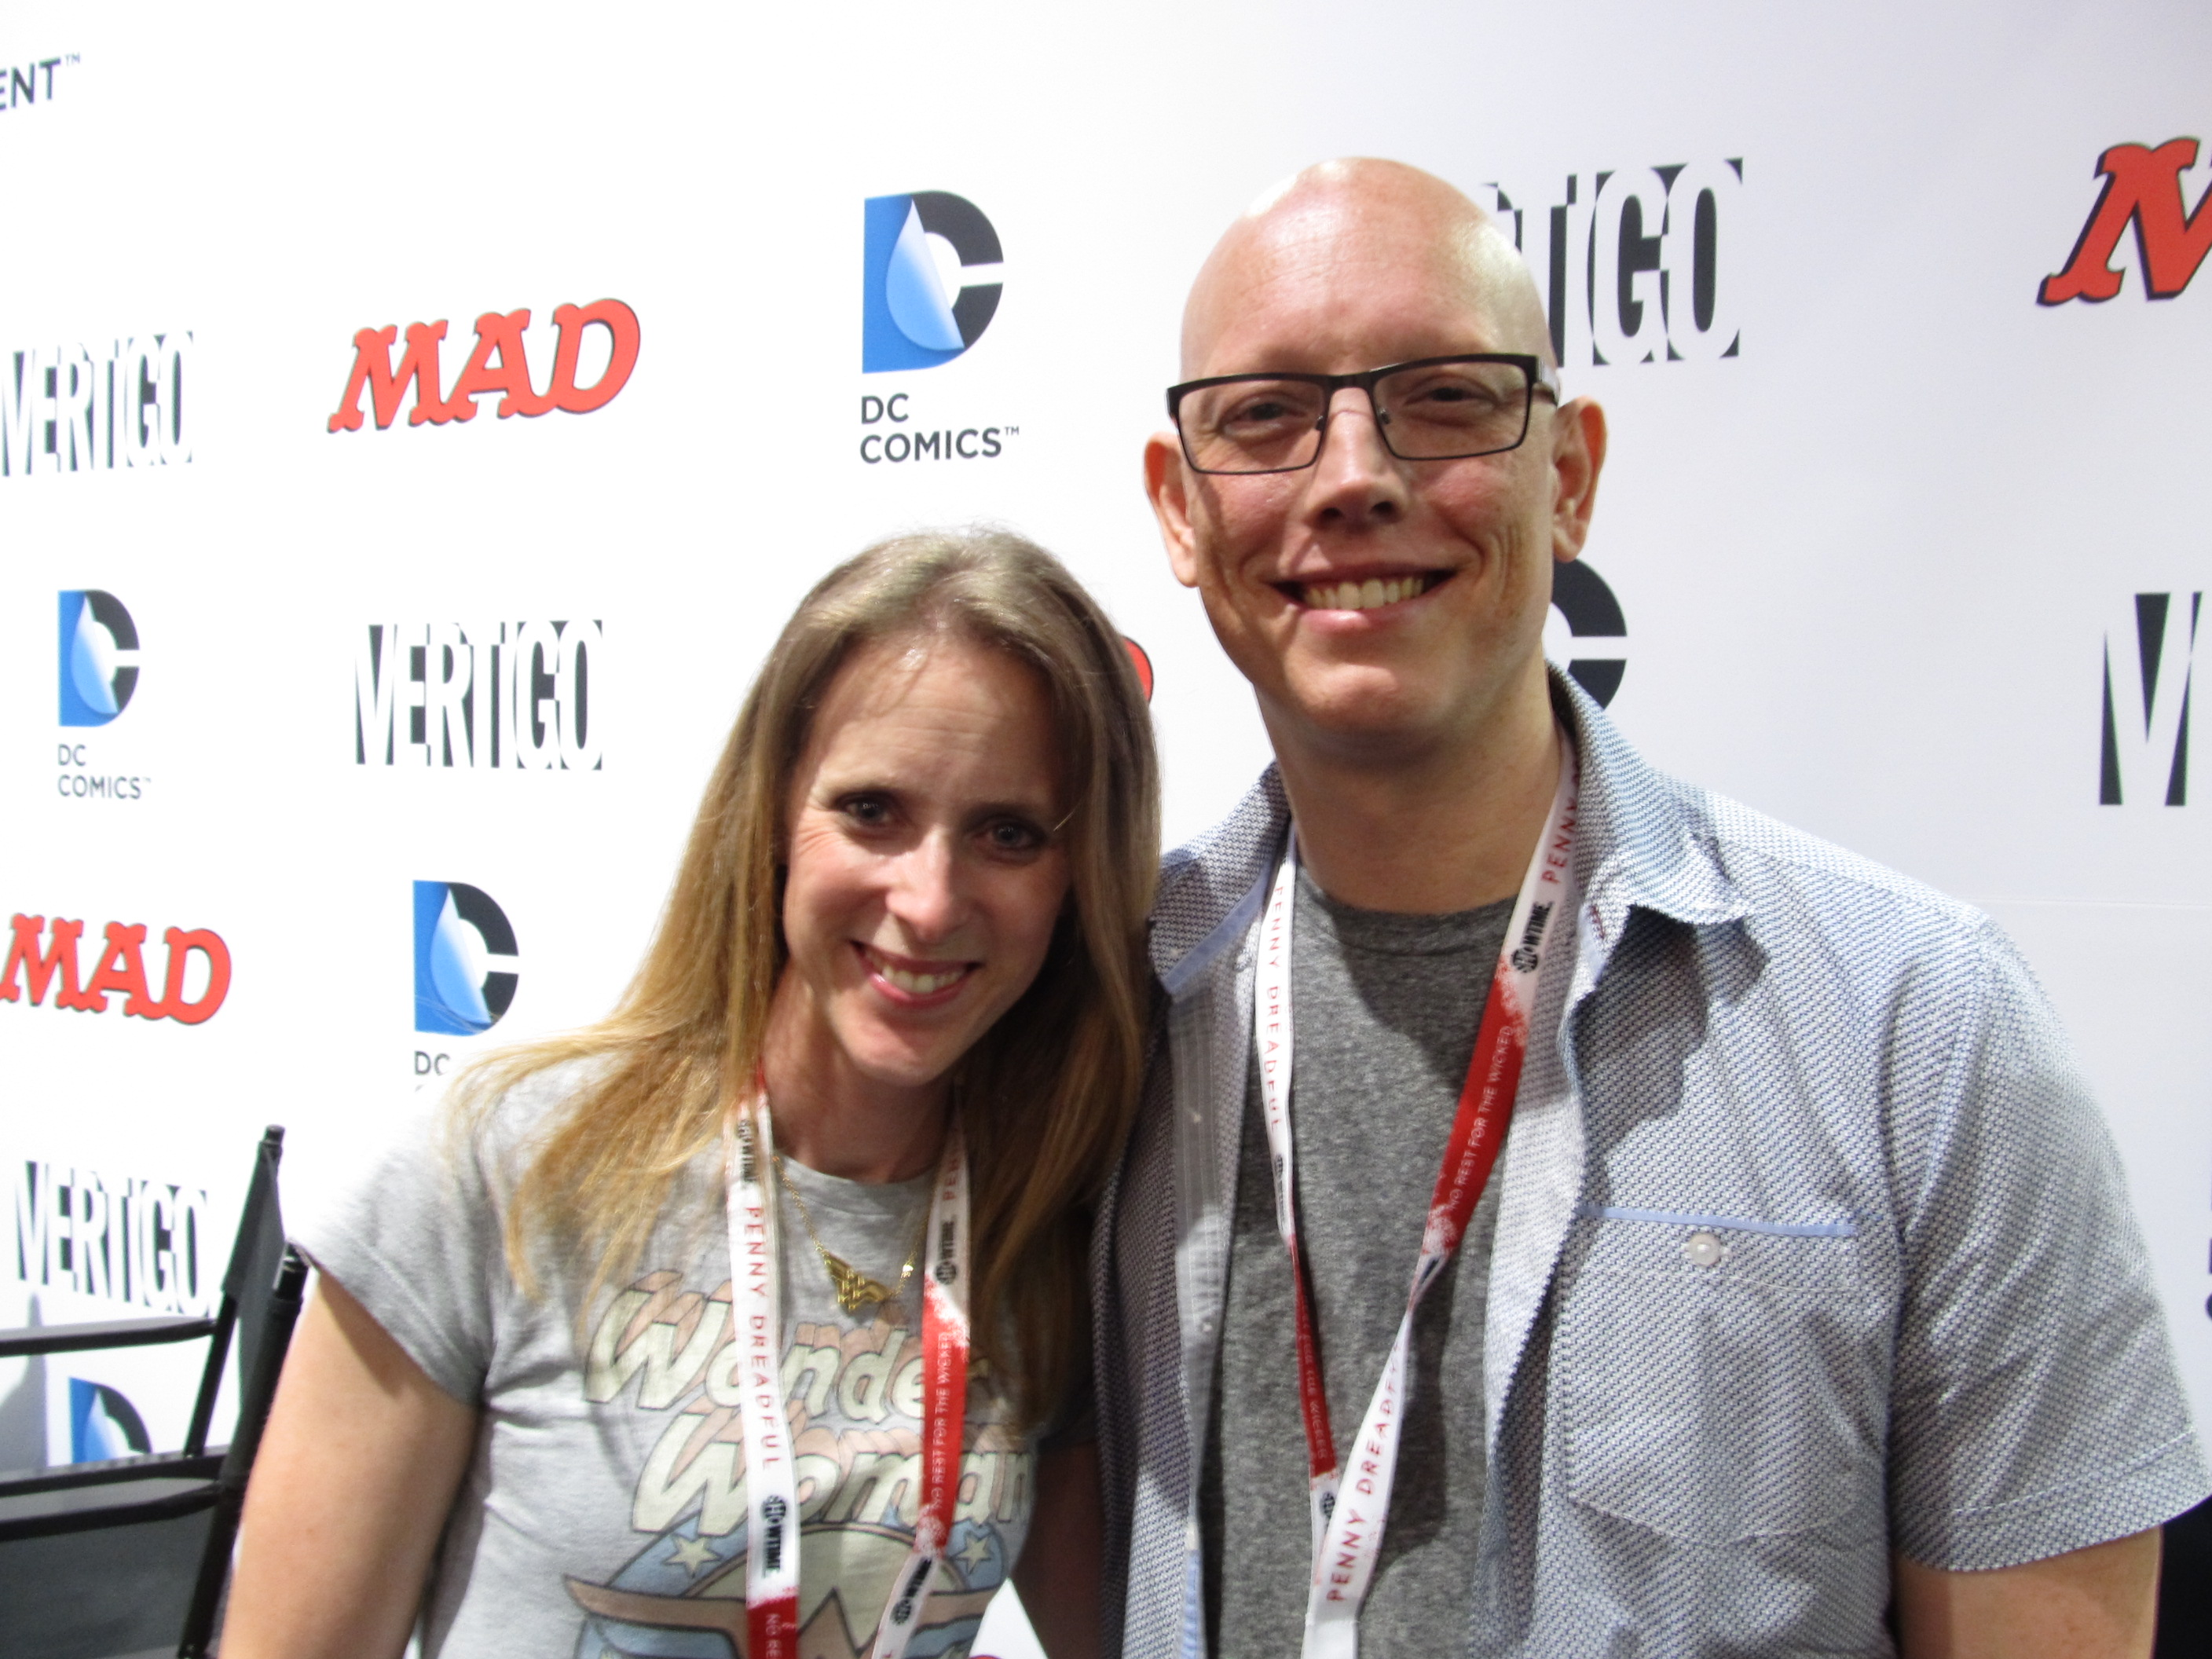 Talking to Comic Superstars David and Meredith Finch at Fan Expo Canada